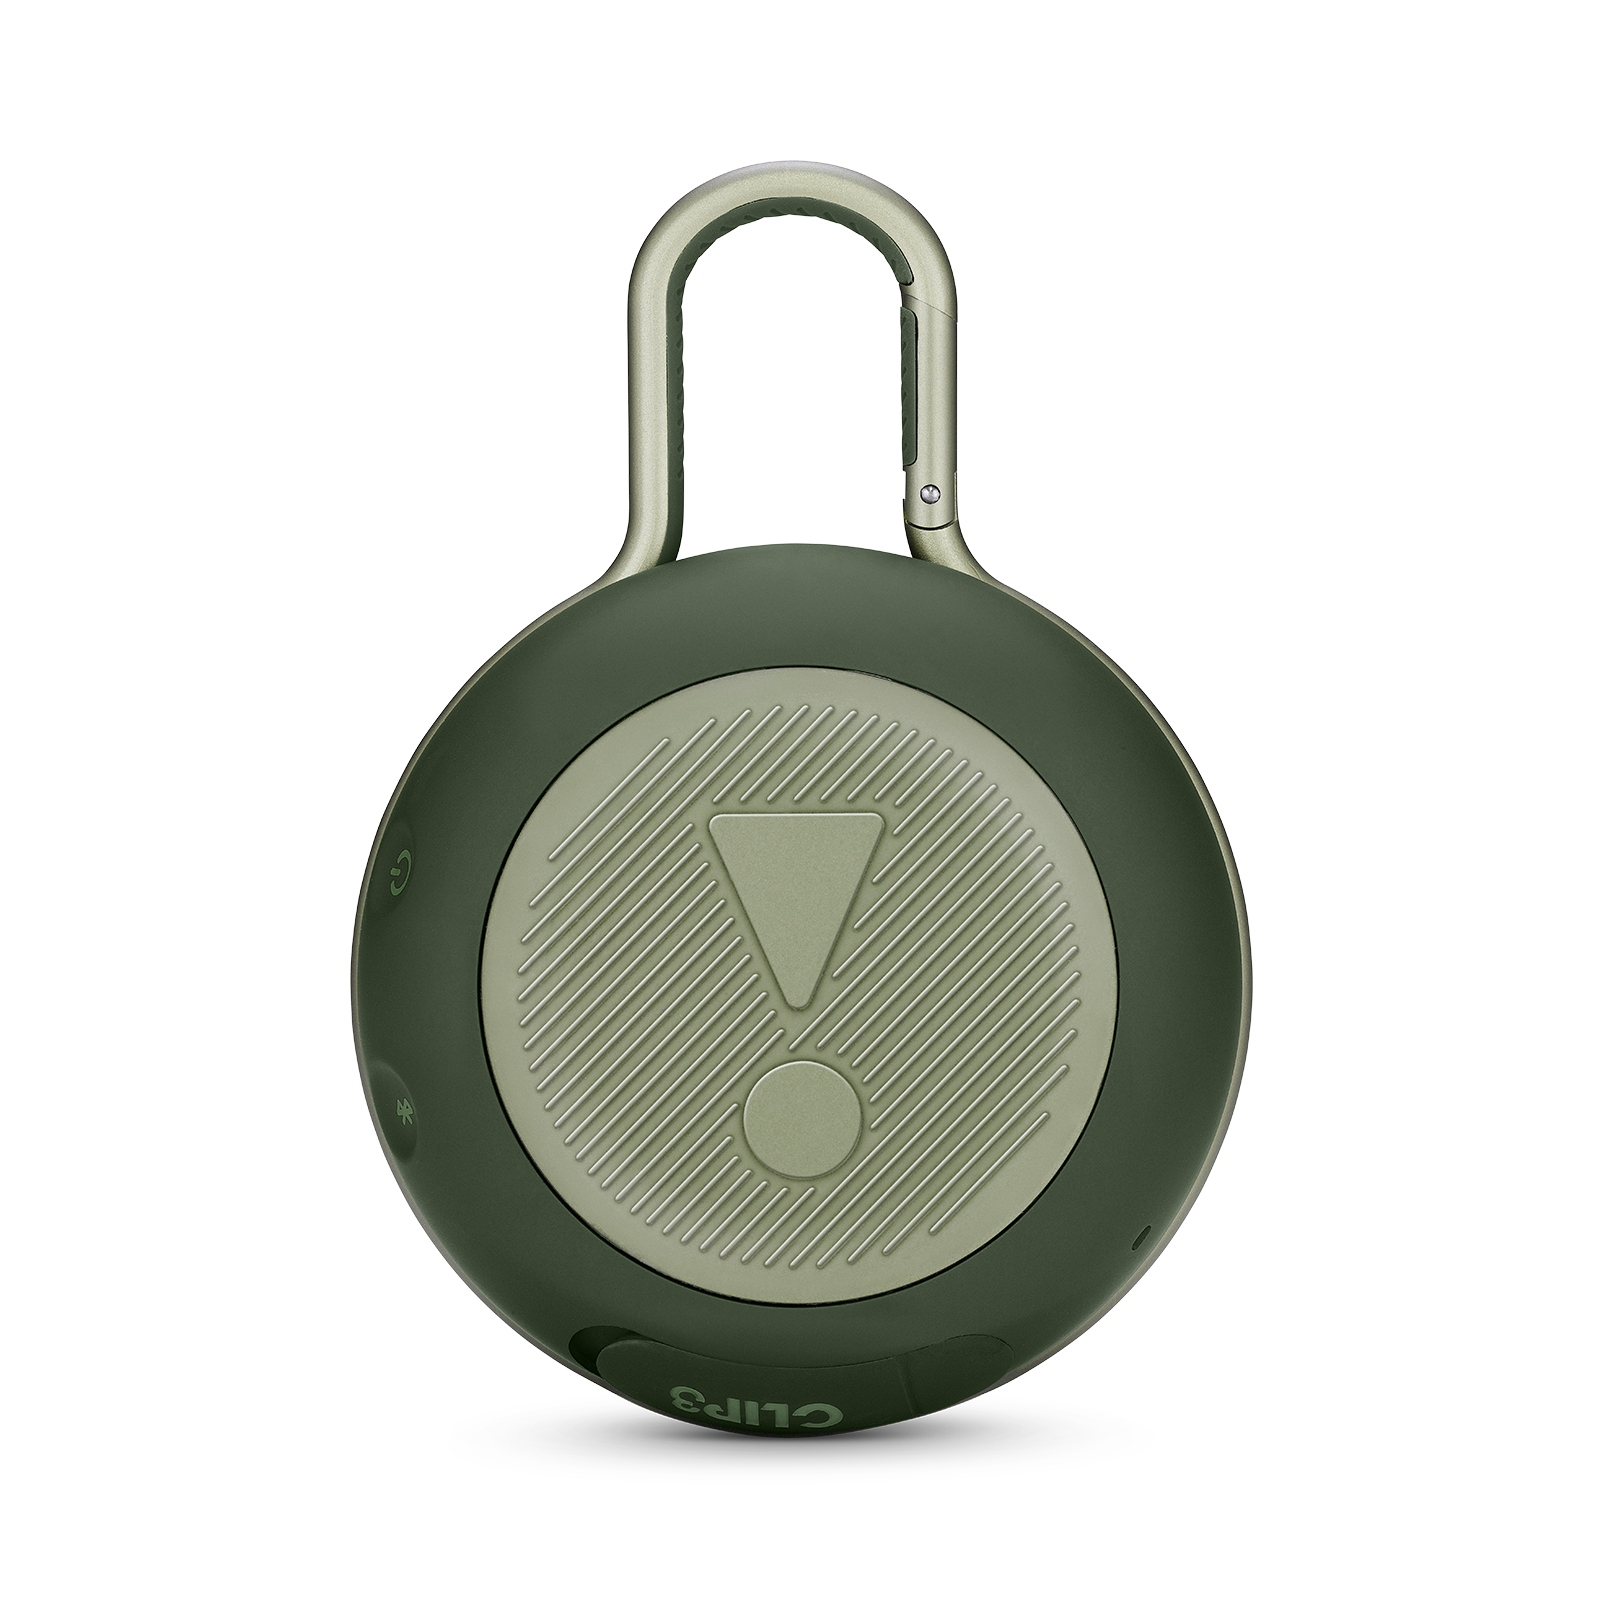 JBL CLIP 3 - Forest Green - Portable Bluetooth® speaker - Back